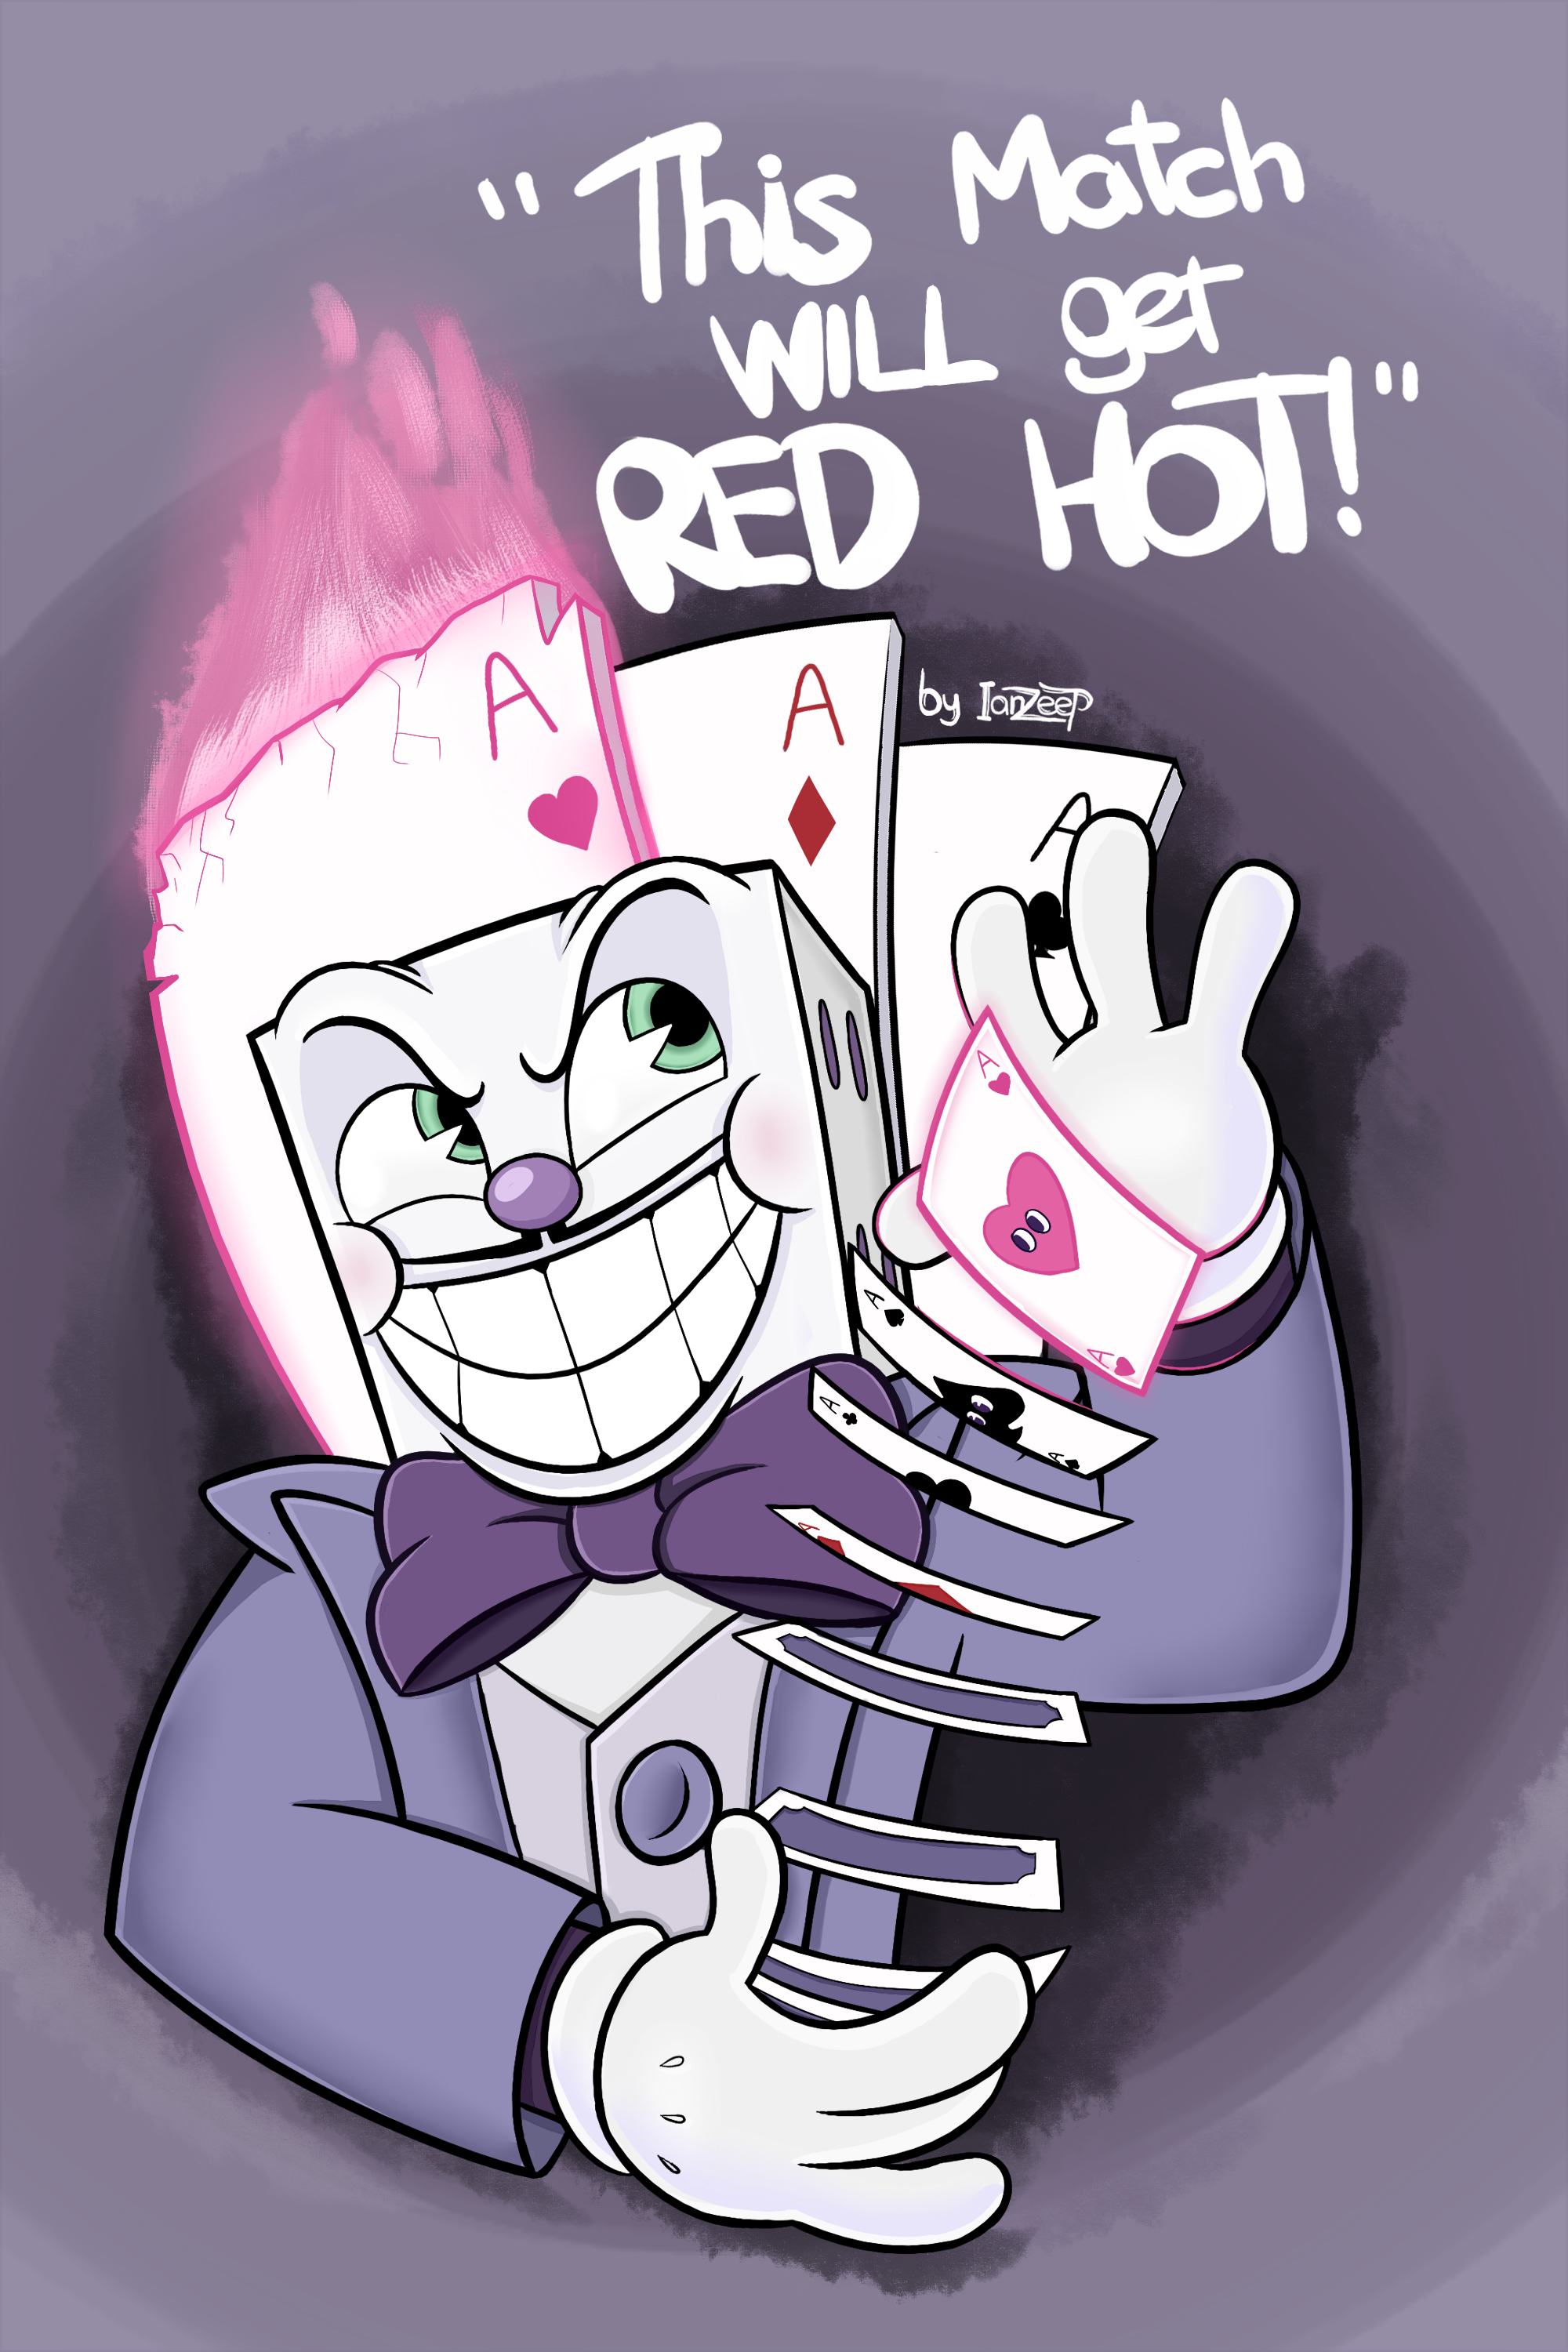 This match will get RED HOT! [King Dice]